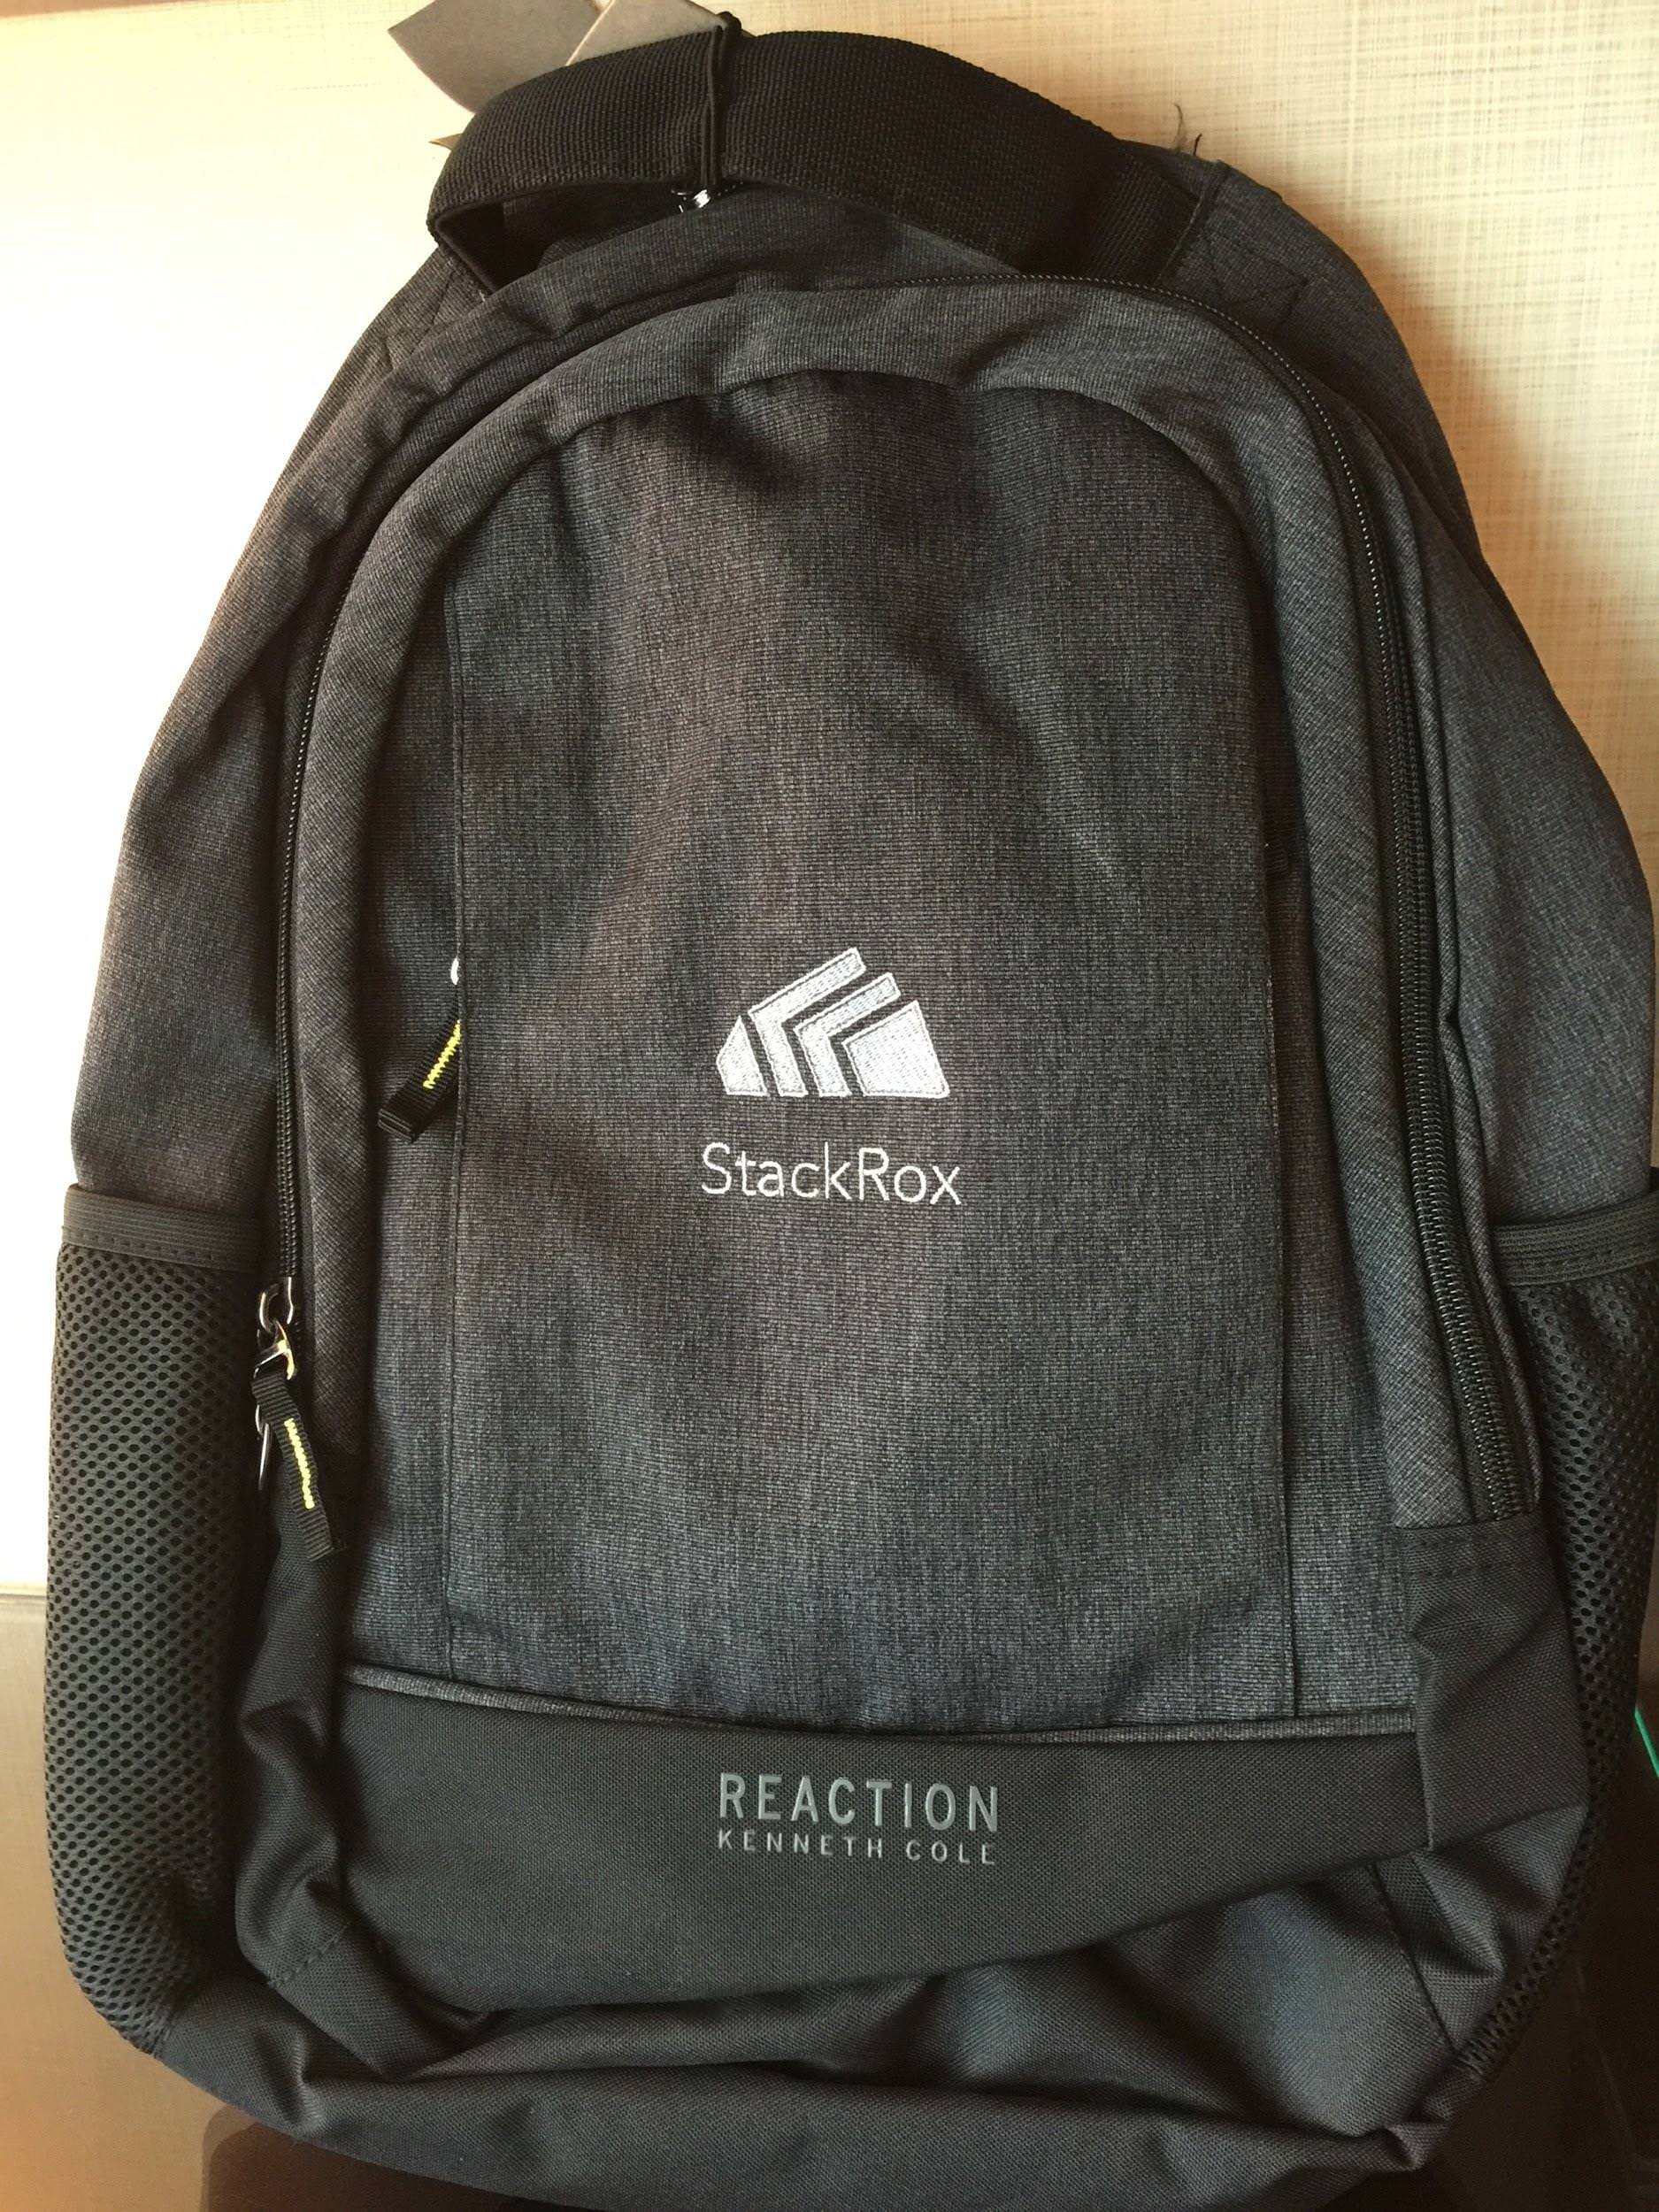 BH backpack